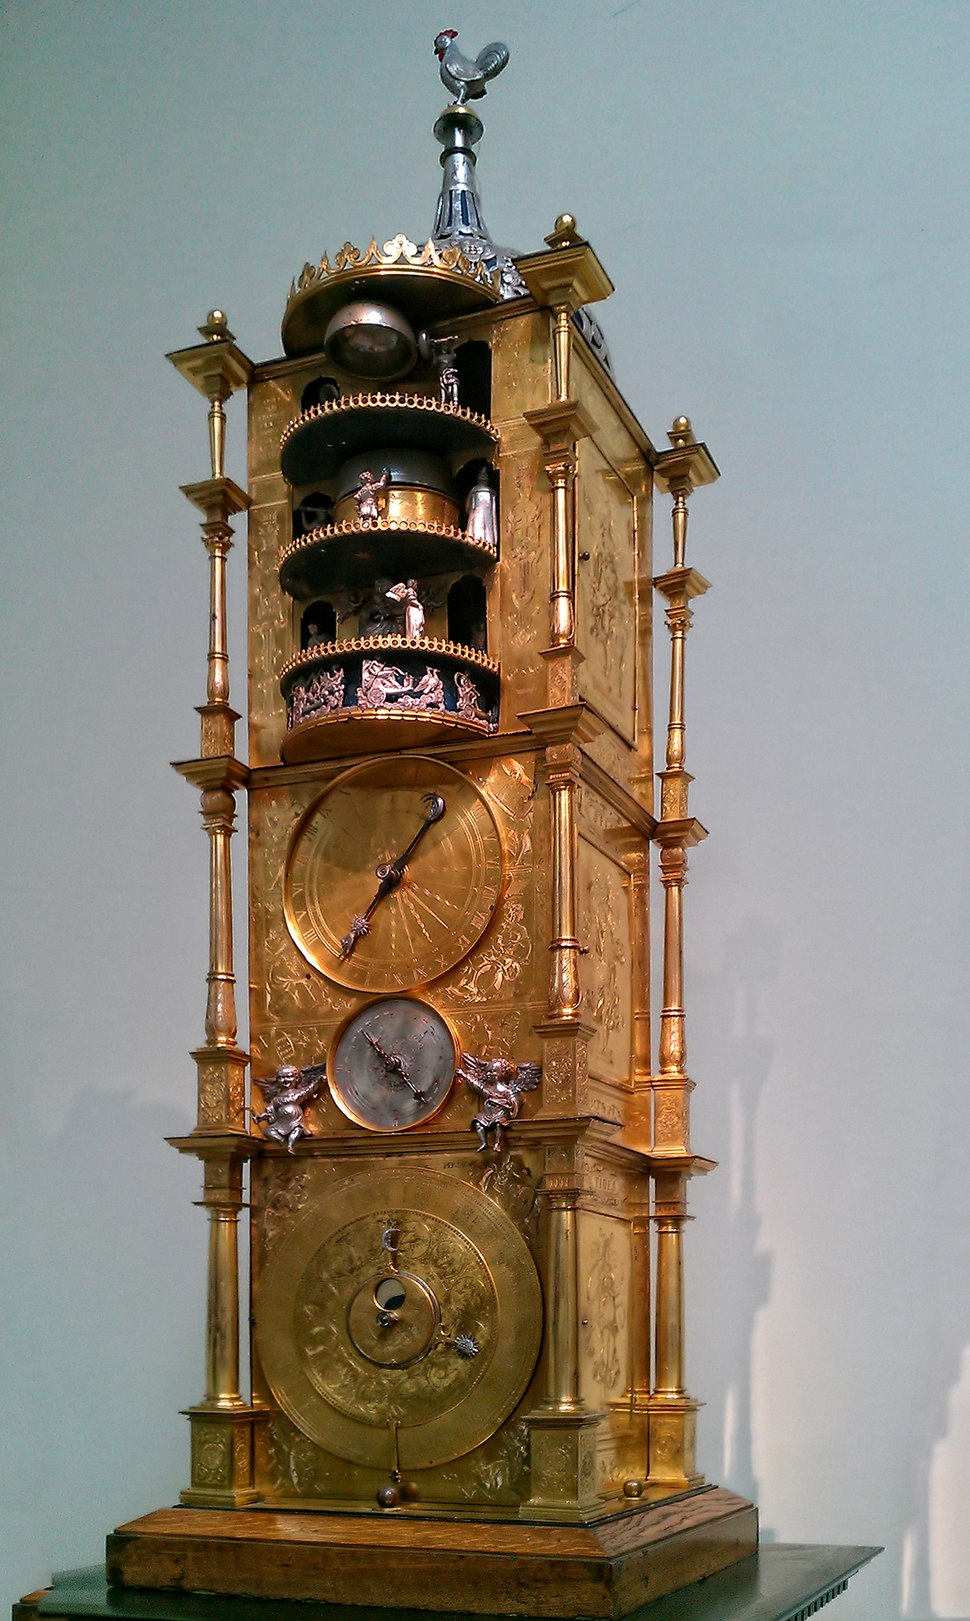 Carillon Clock with Automata, by Isaac Habrecht - British Museum